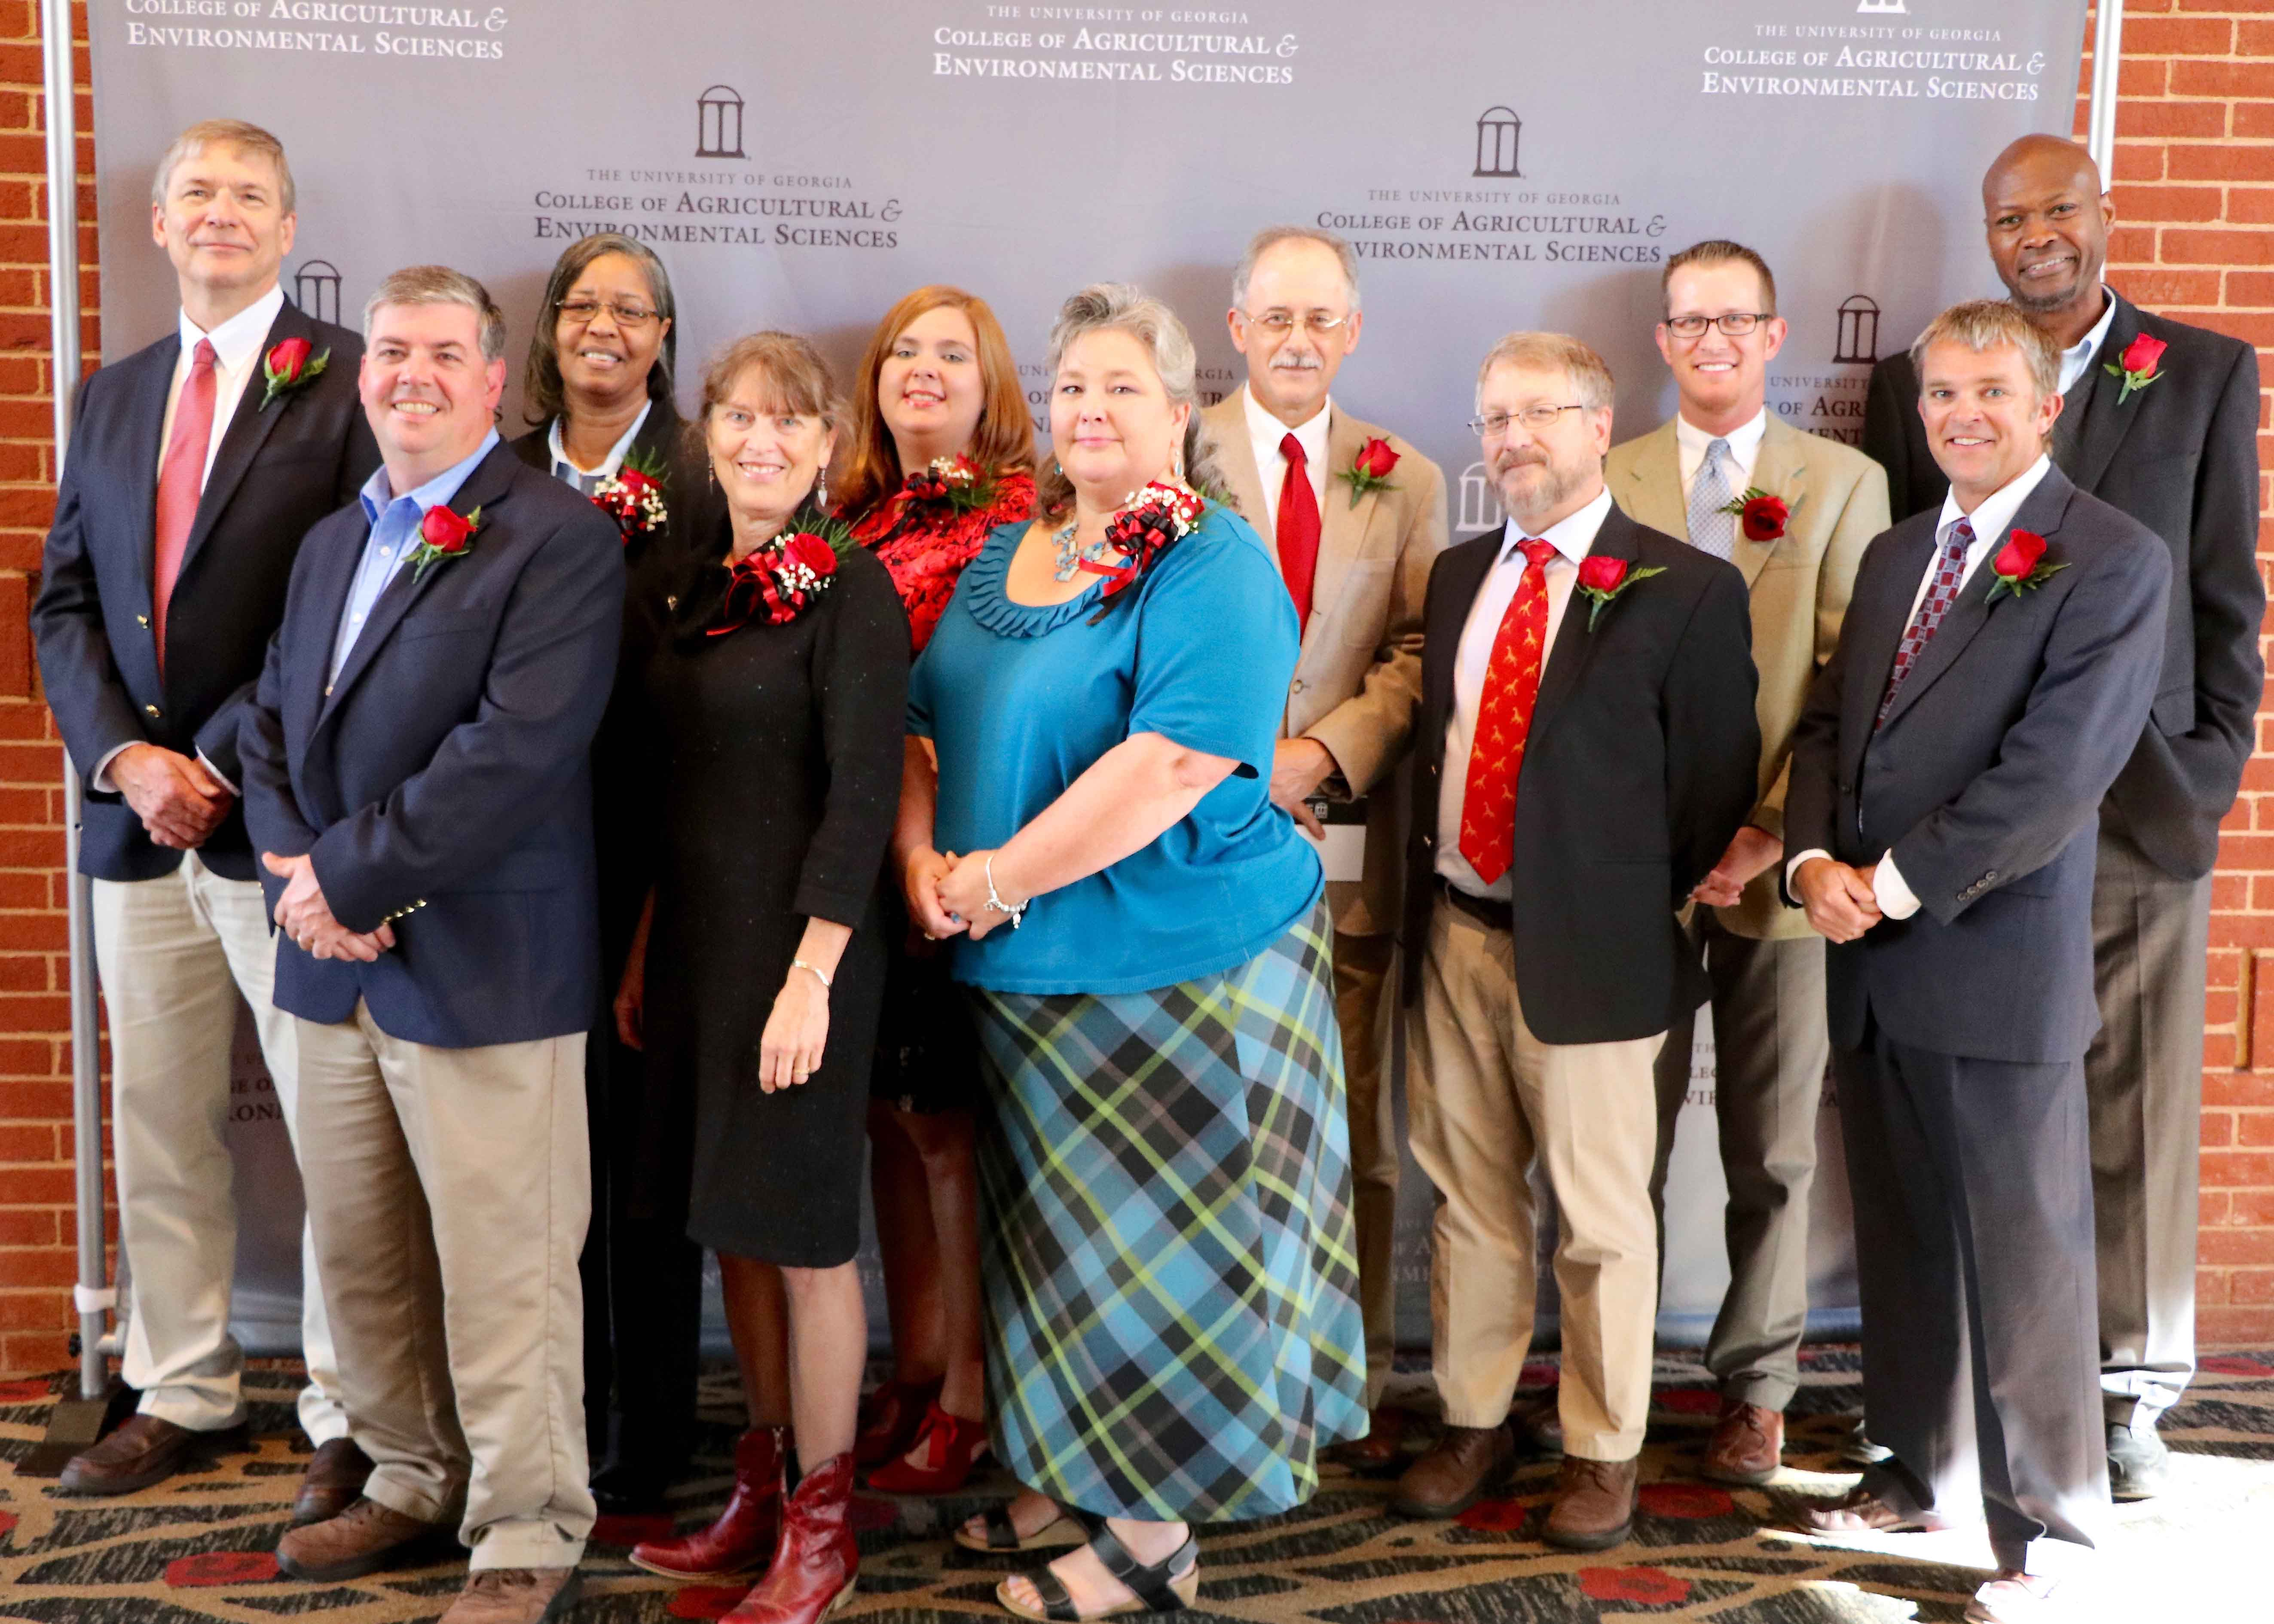 On Nov. 7, 2016 the University of Georgia College of Agriculture and Environmental Sciences honored faculty and staff at the D.W. Brooks Lecture and Awards Ceremony. Those honored included; from left front row; Brian Fairchild, Julia Gaskin, JoAnne Norris, Wayne Parrott, Bill Tyson; and from left back row; Peter LaFayette, Carla Barnett, Lindsey Barner, Tim Brenneman, Nick Fuhrman and Ron Walcott.